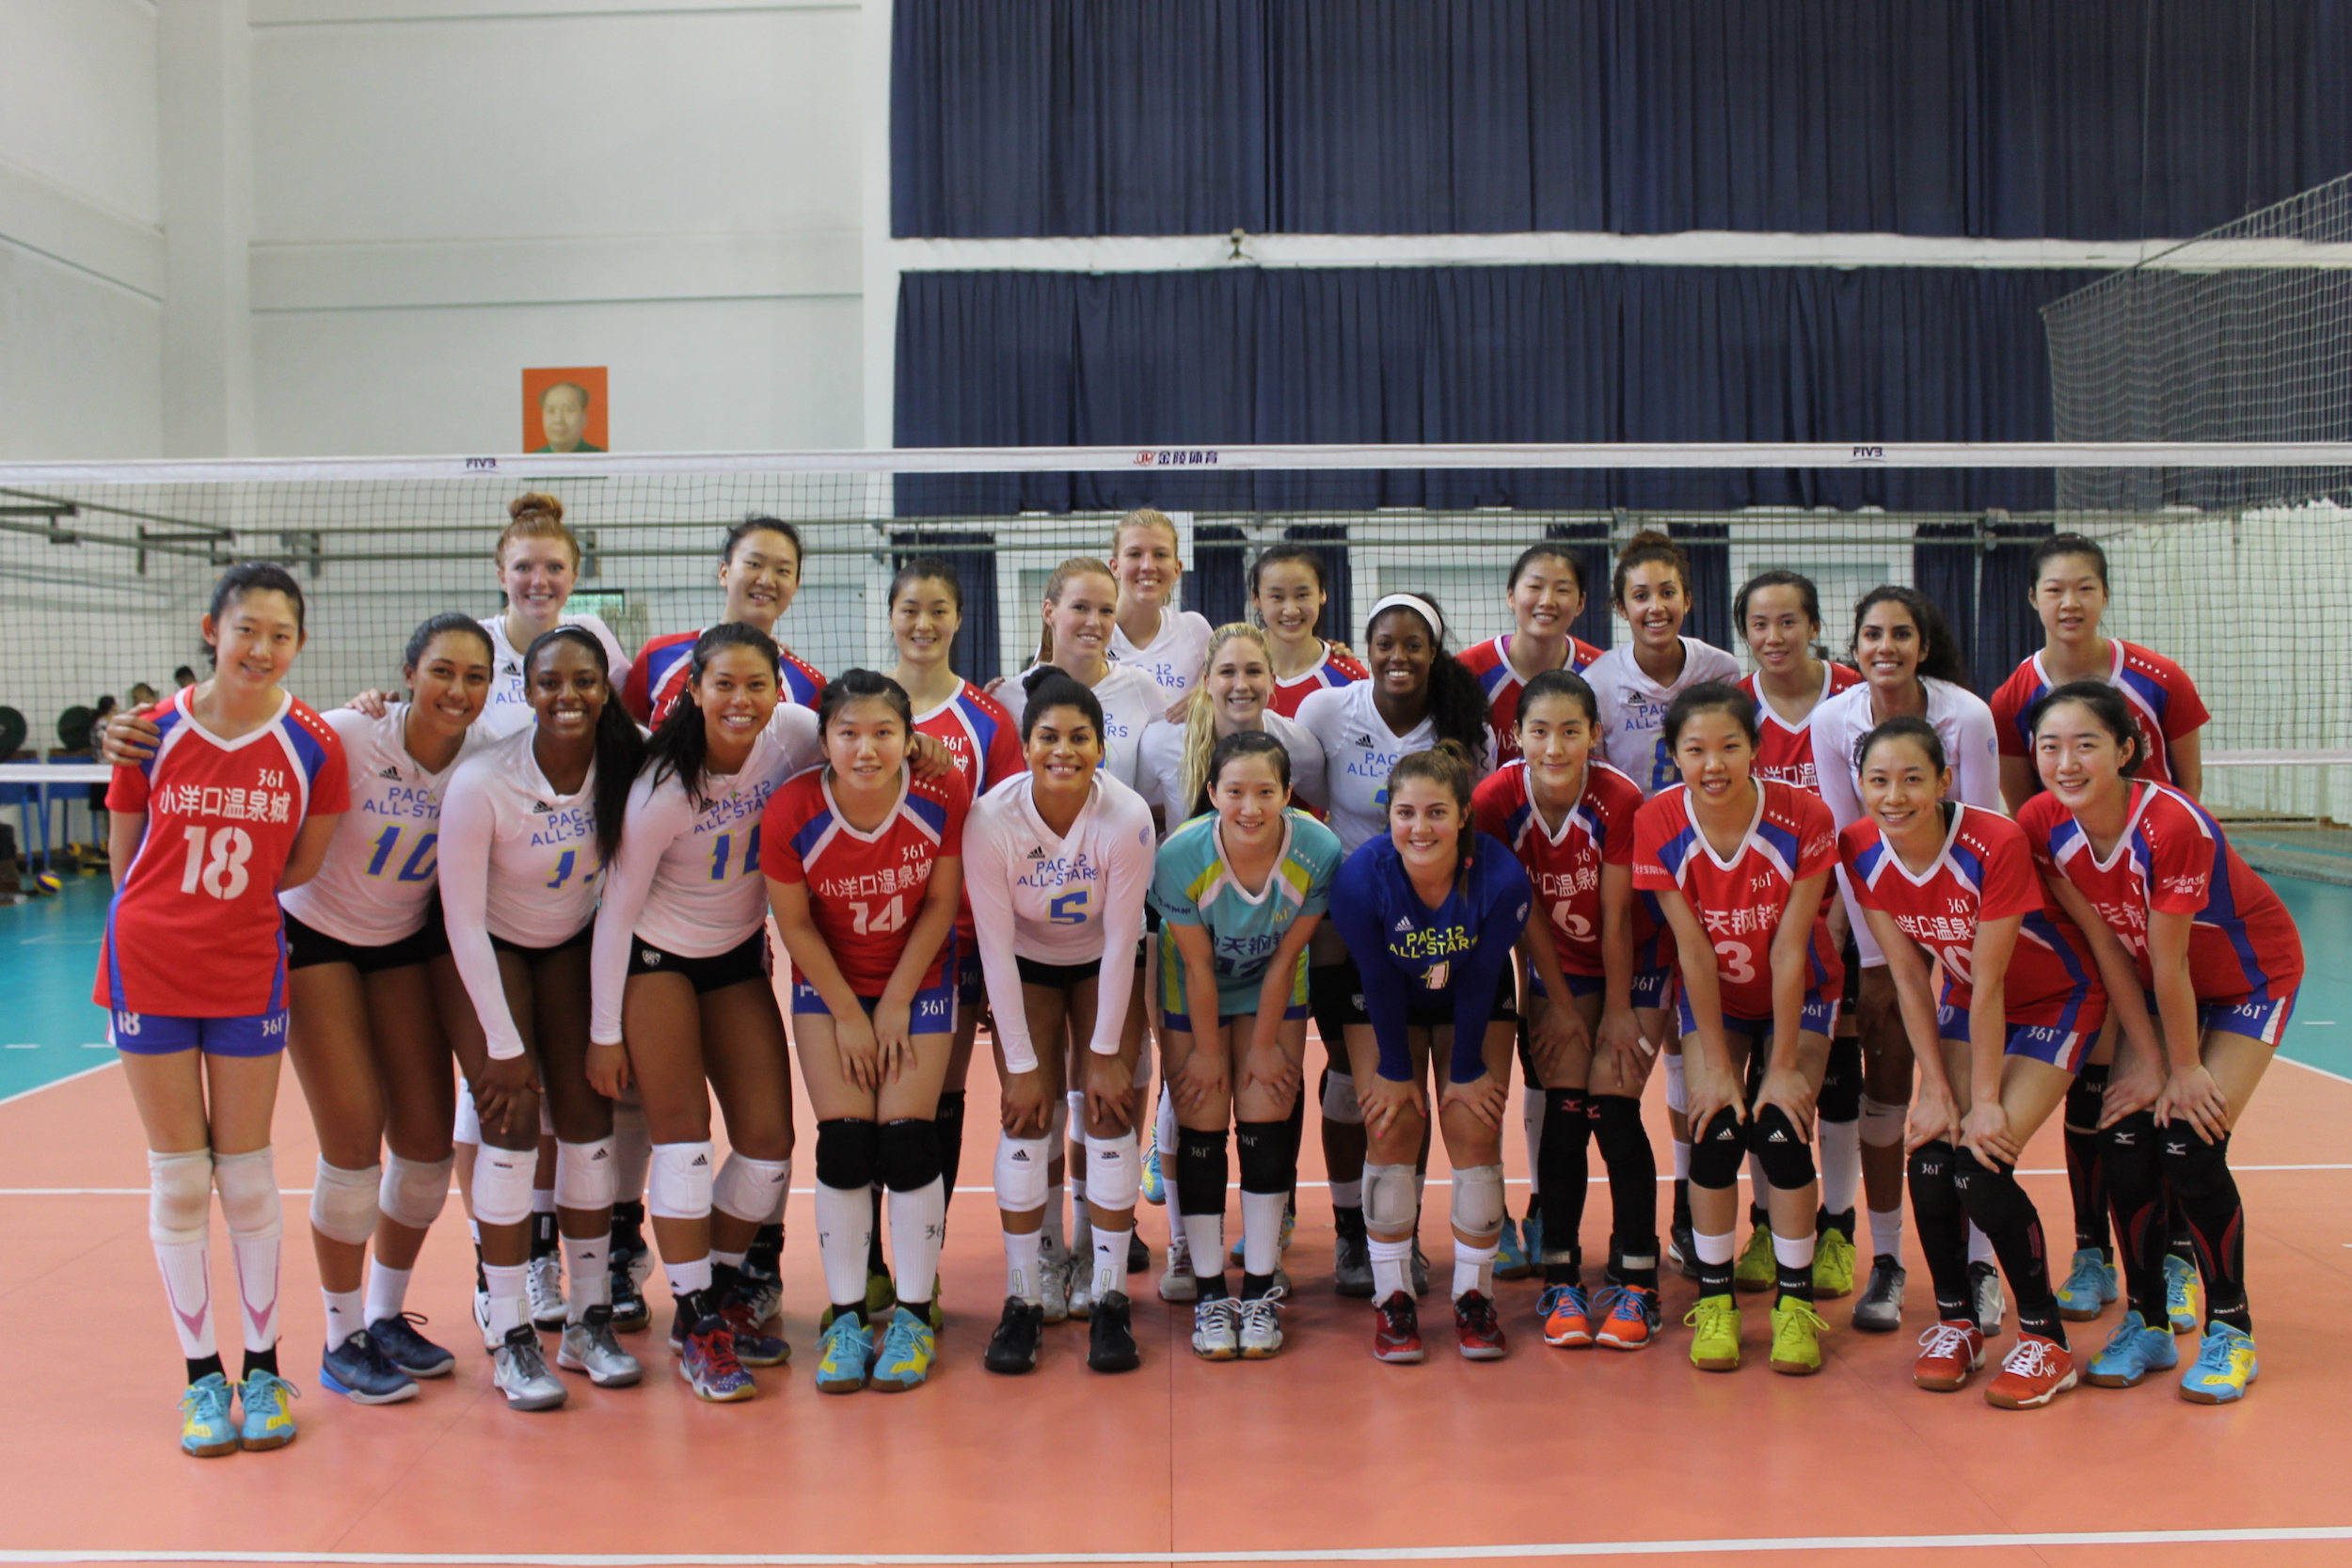 13fa07700 Jiangsu Overpowers Pac-12 Volleyball in Nanjing